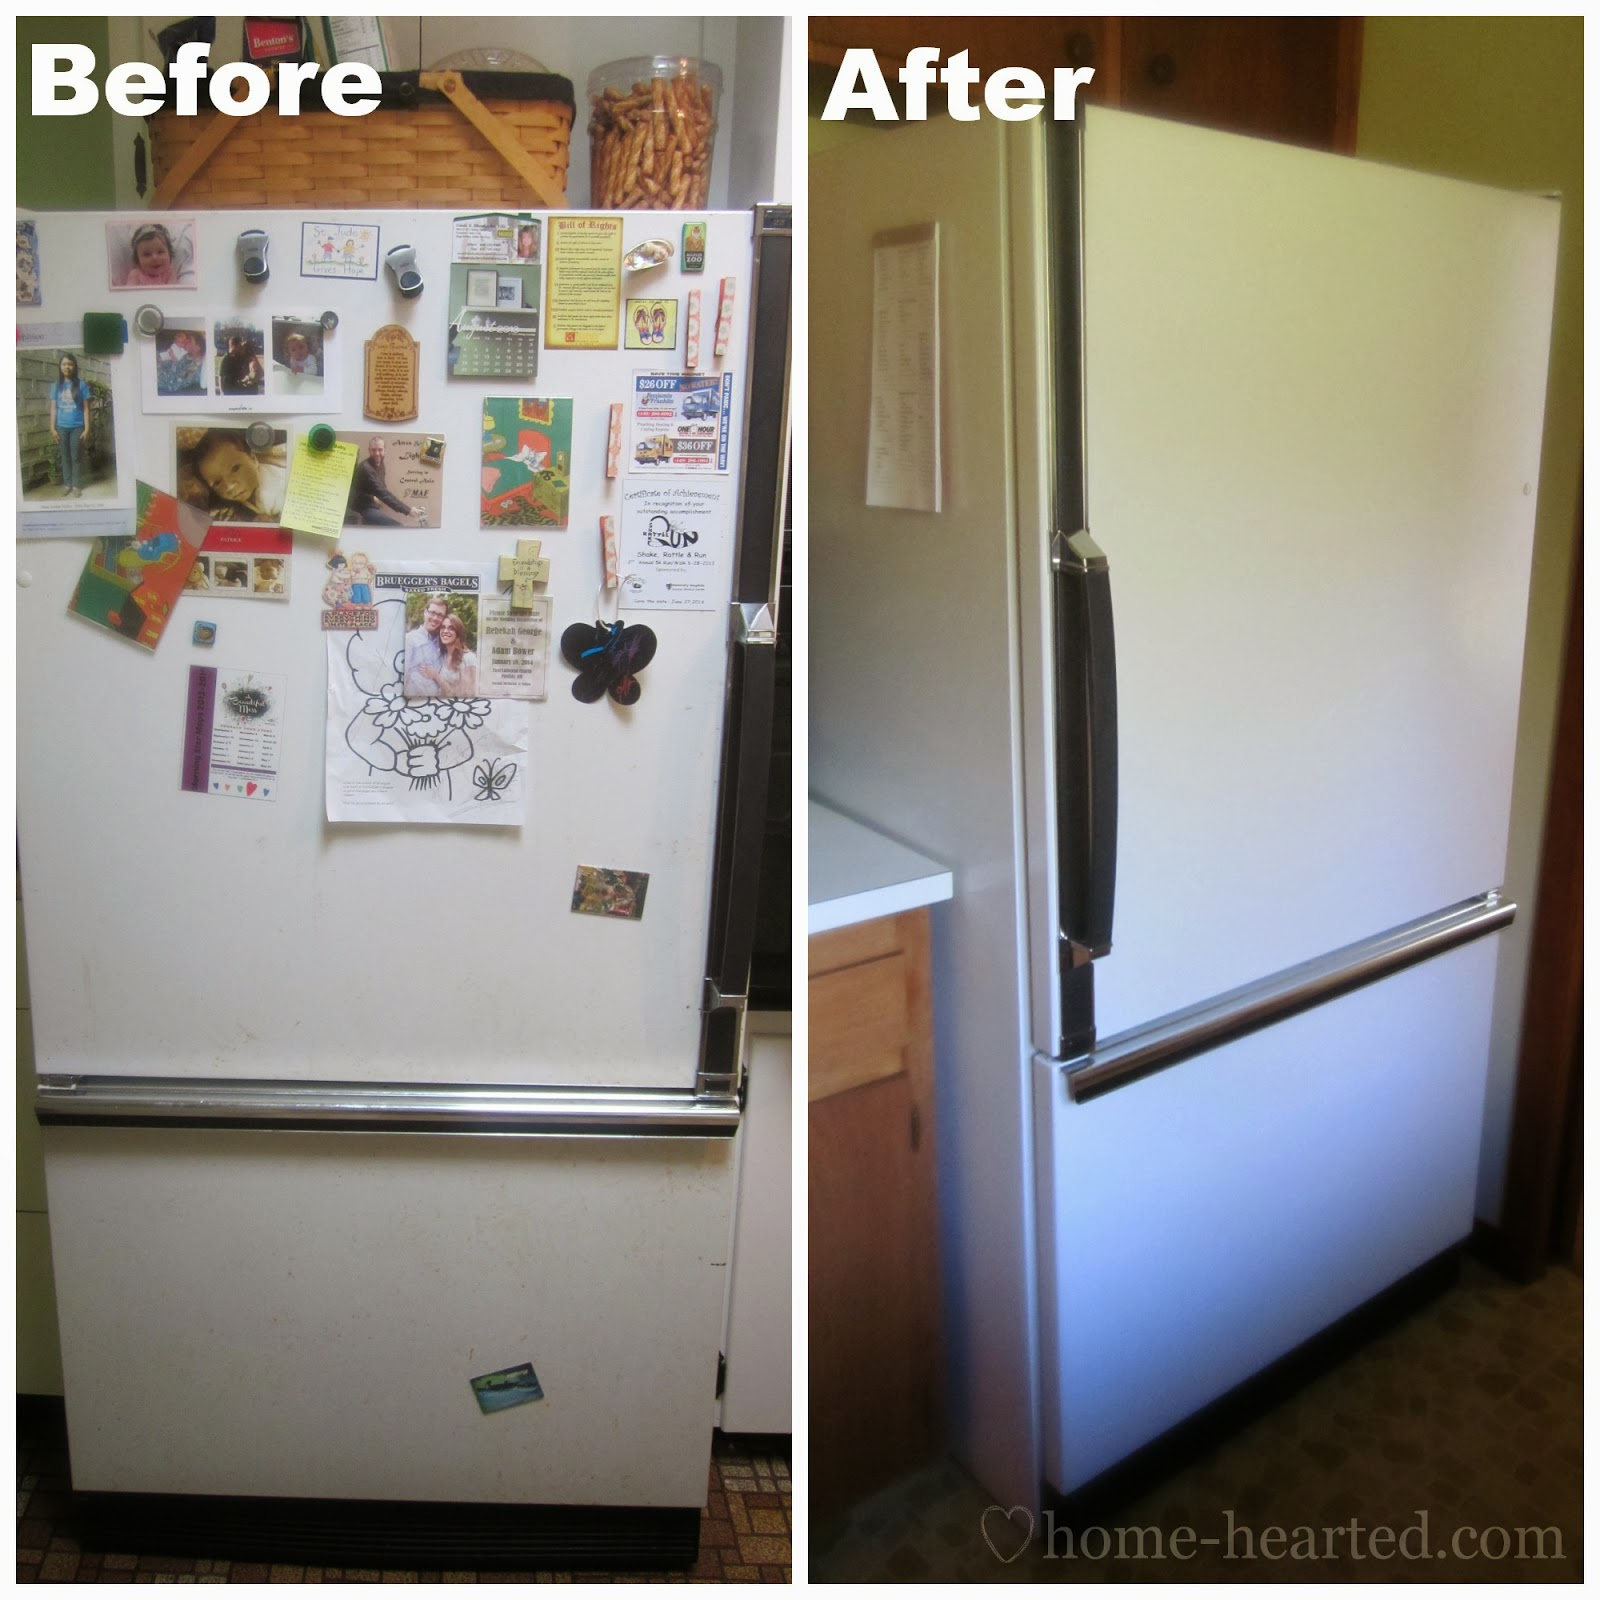 Can You Paint a Refrigerator